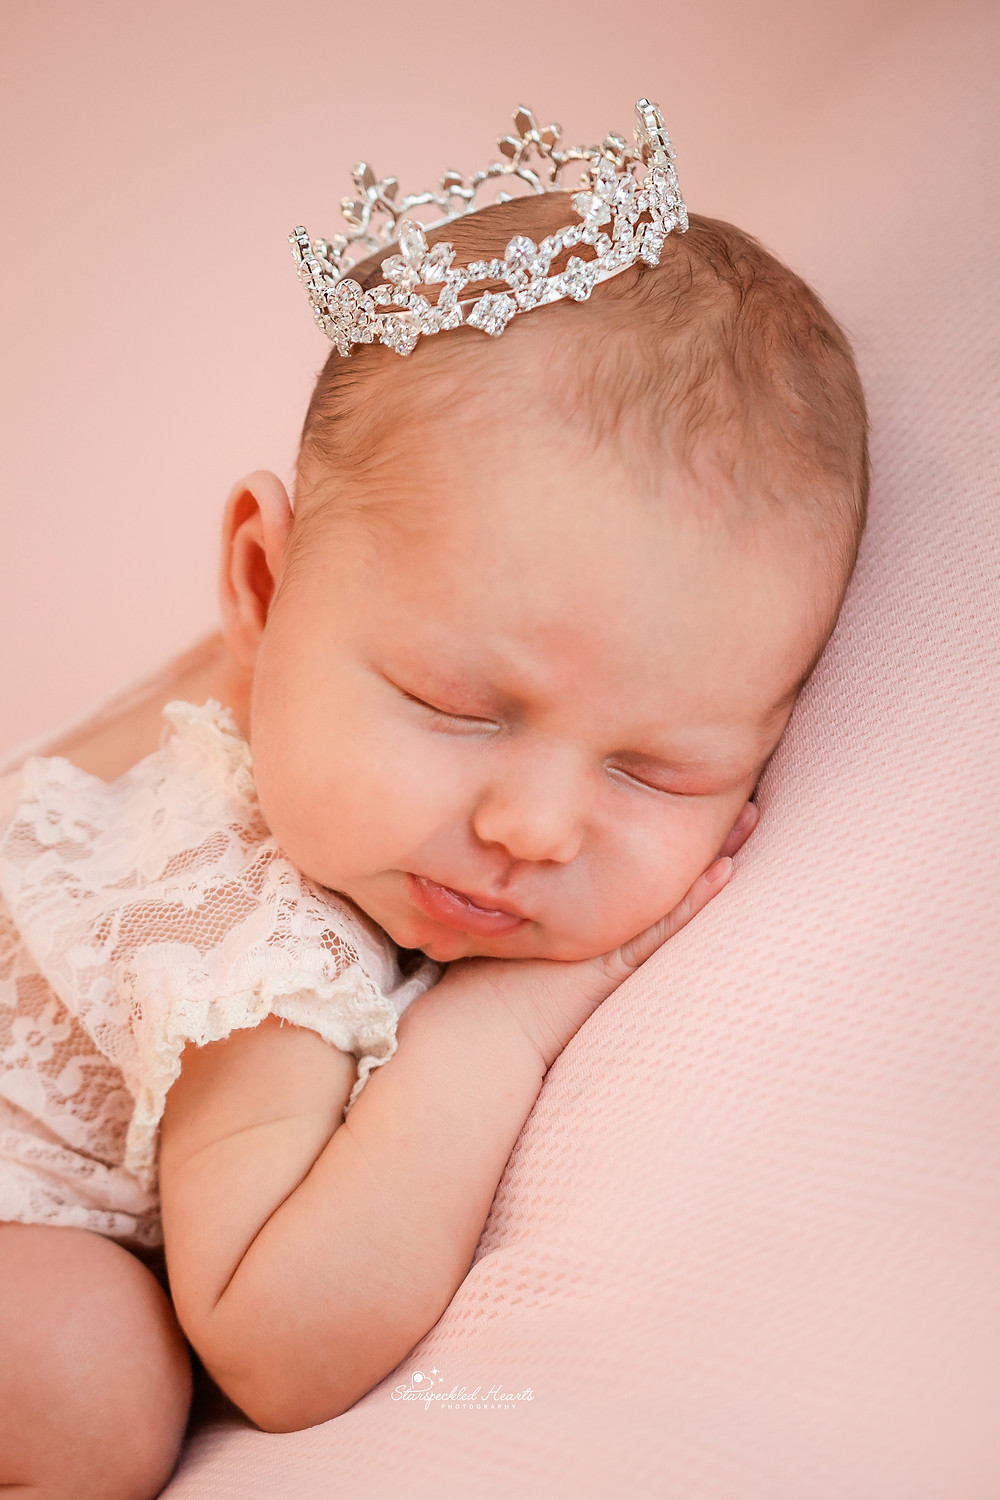 newborn baby girl wearing a white lacy romper and a silver crown on her head on a pink backdrop